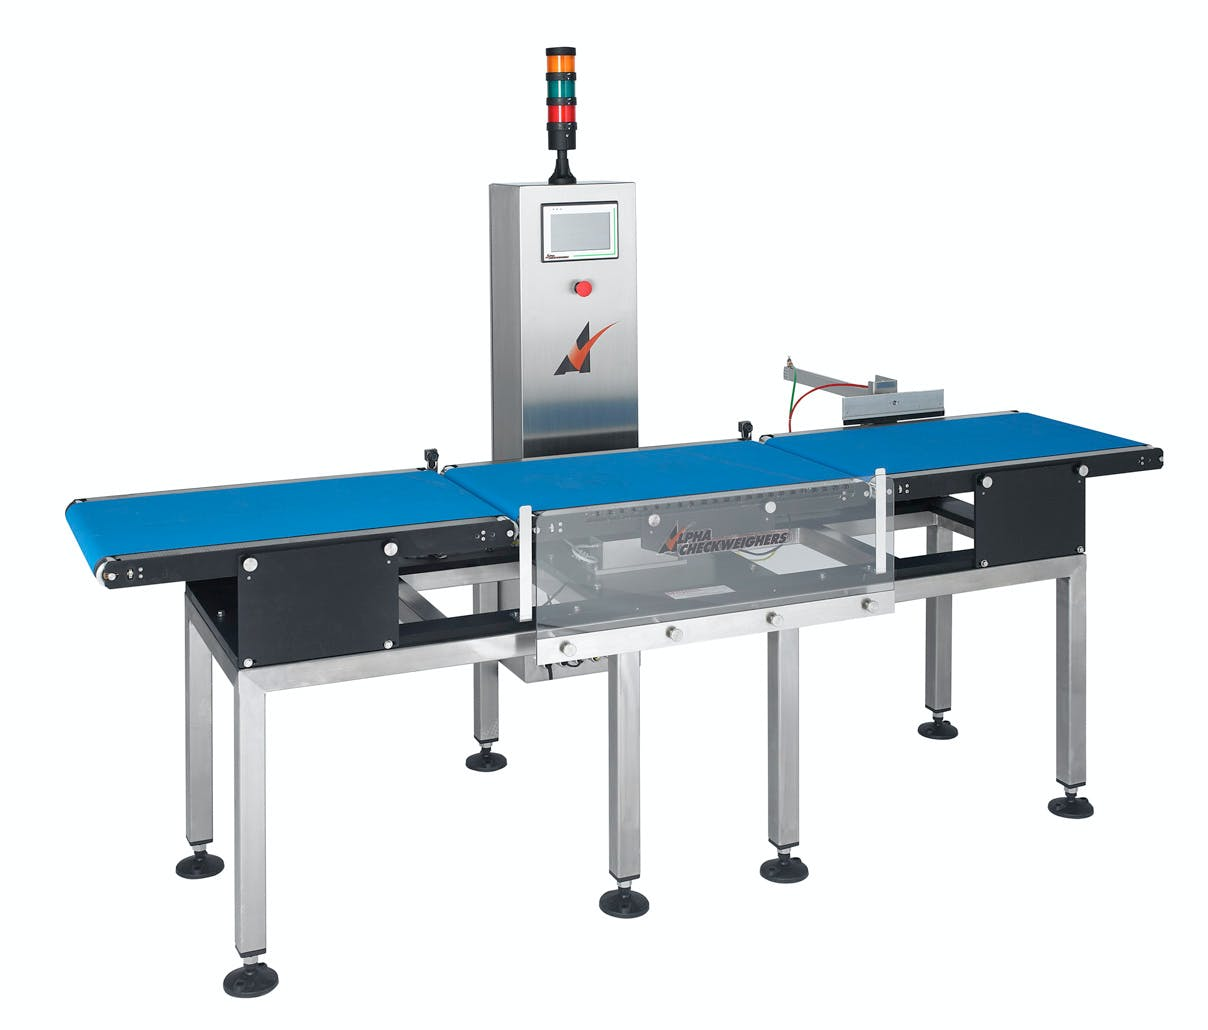 Model MW-16 Checkweigher sold by All-Fill